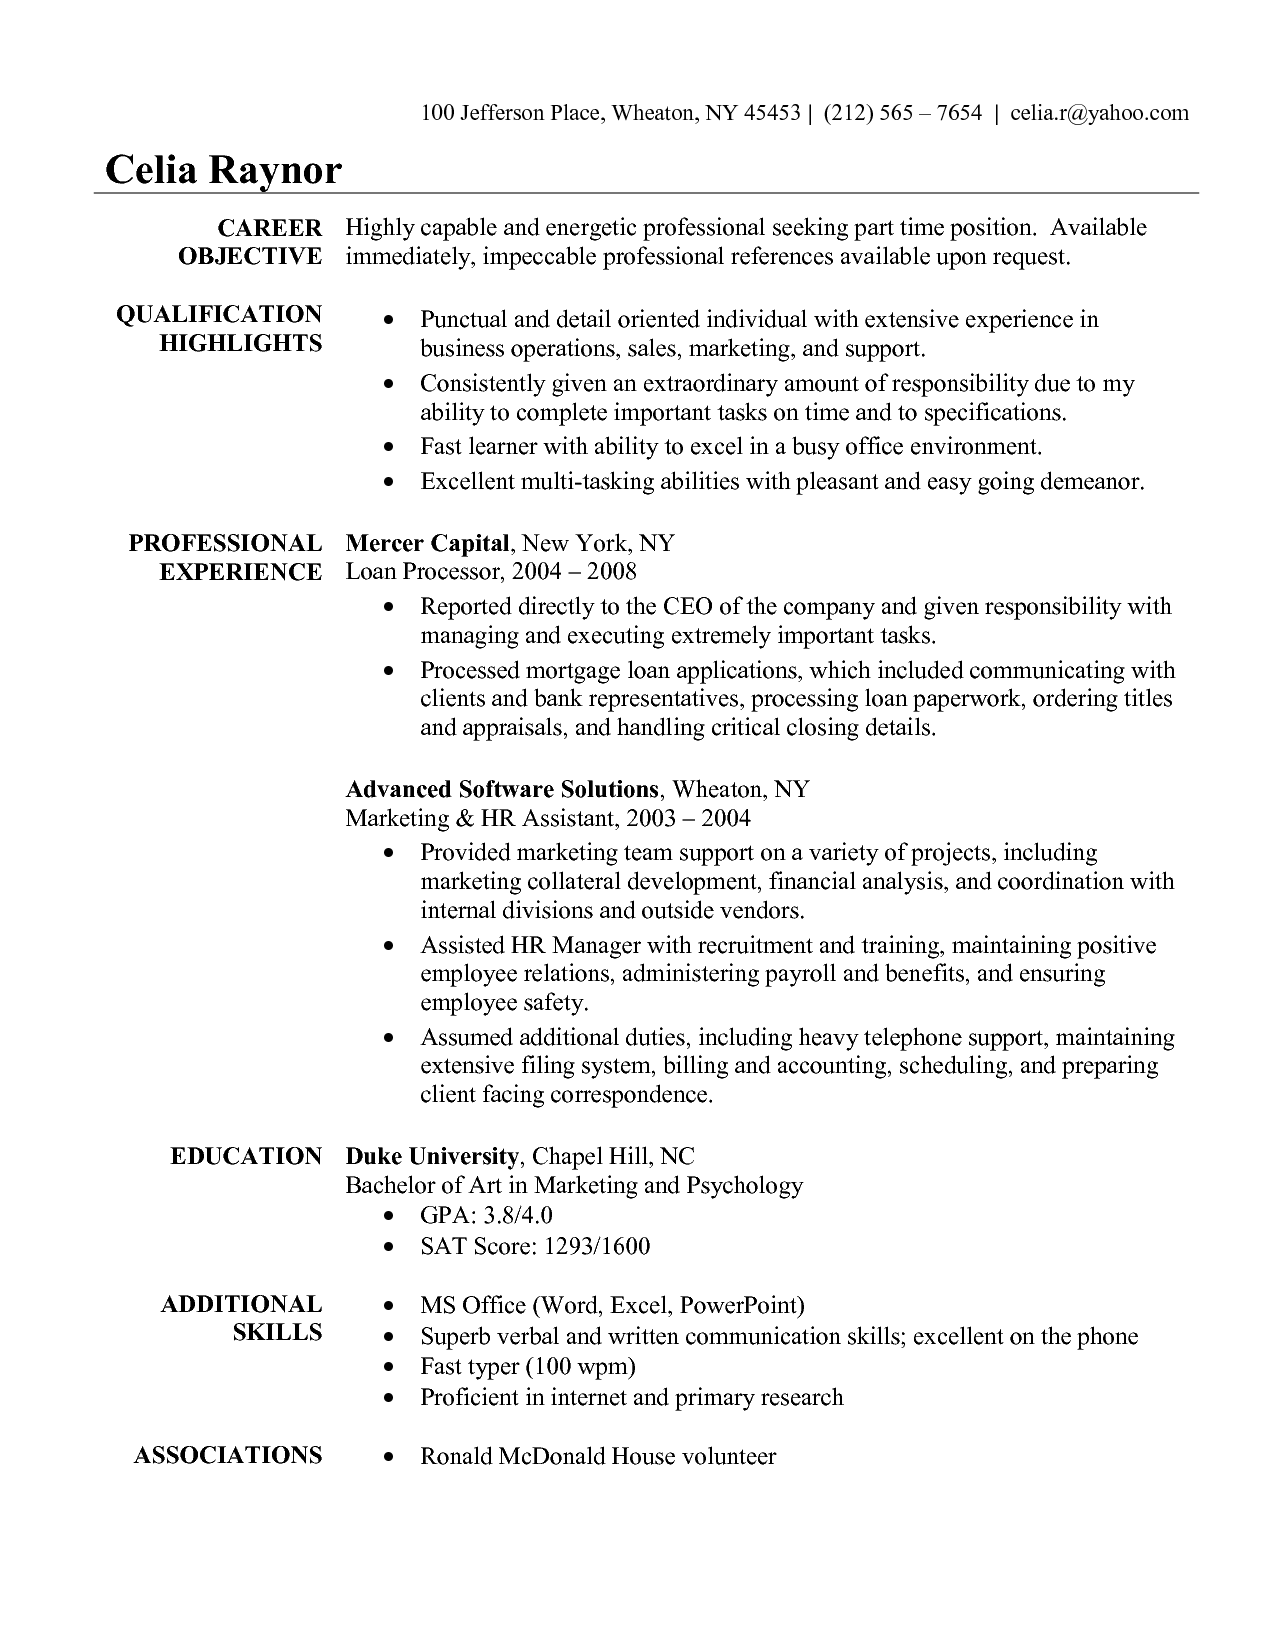 Administrative Secretary Resume Stunning Resume Sample For Administrative Assistant Resume Samples For .